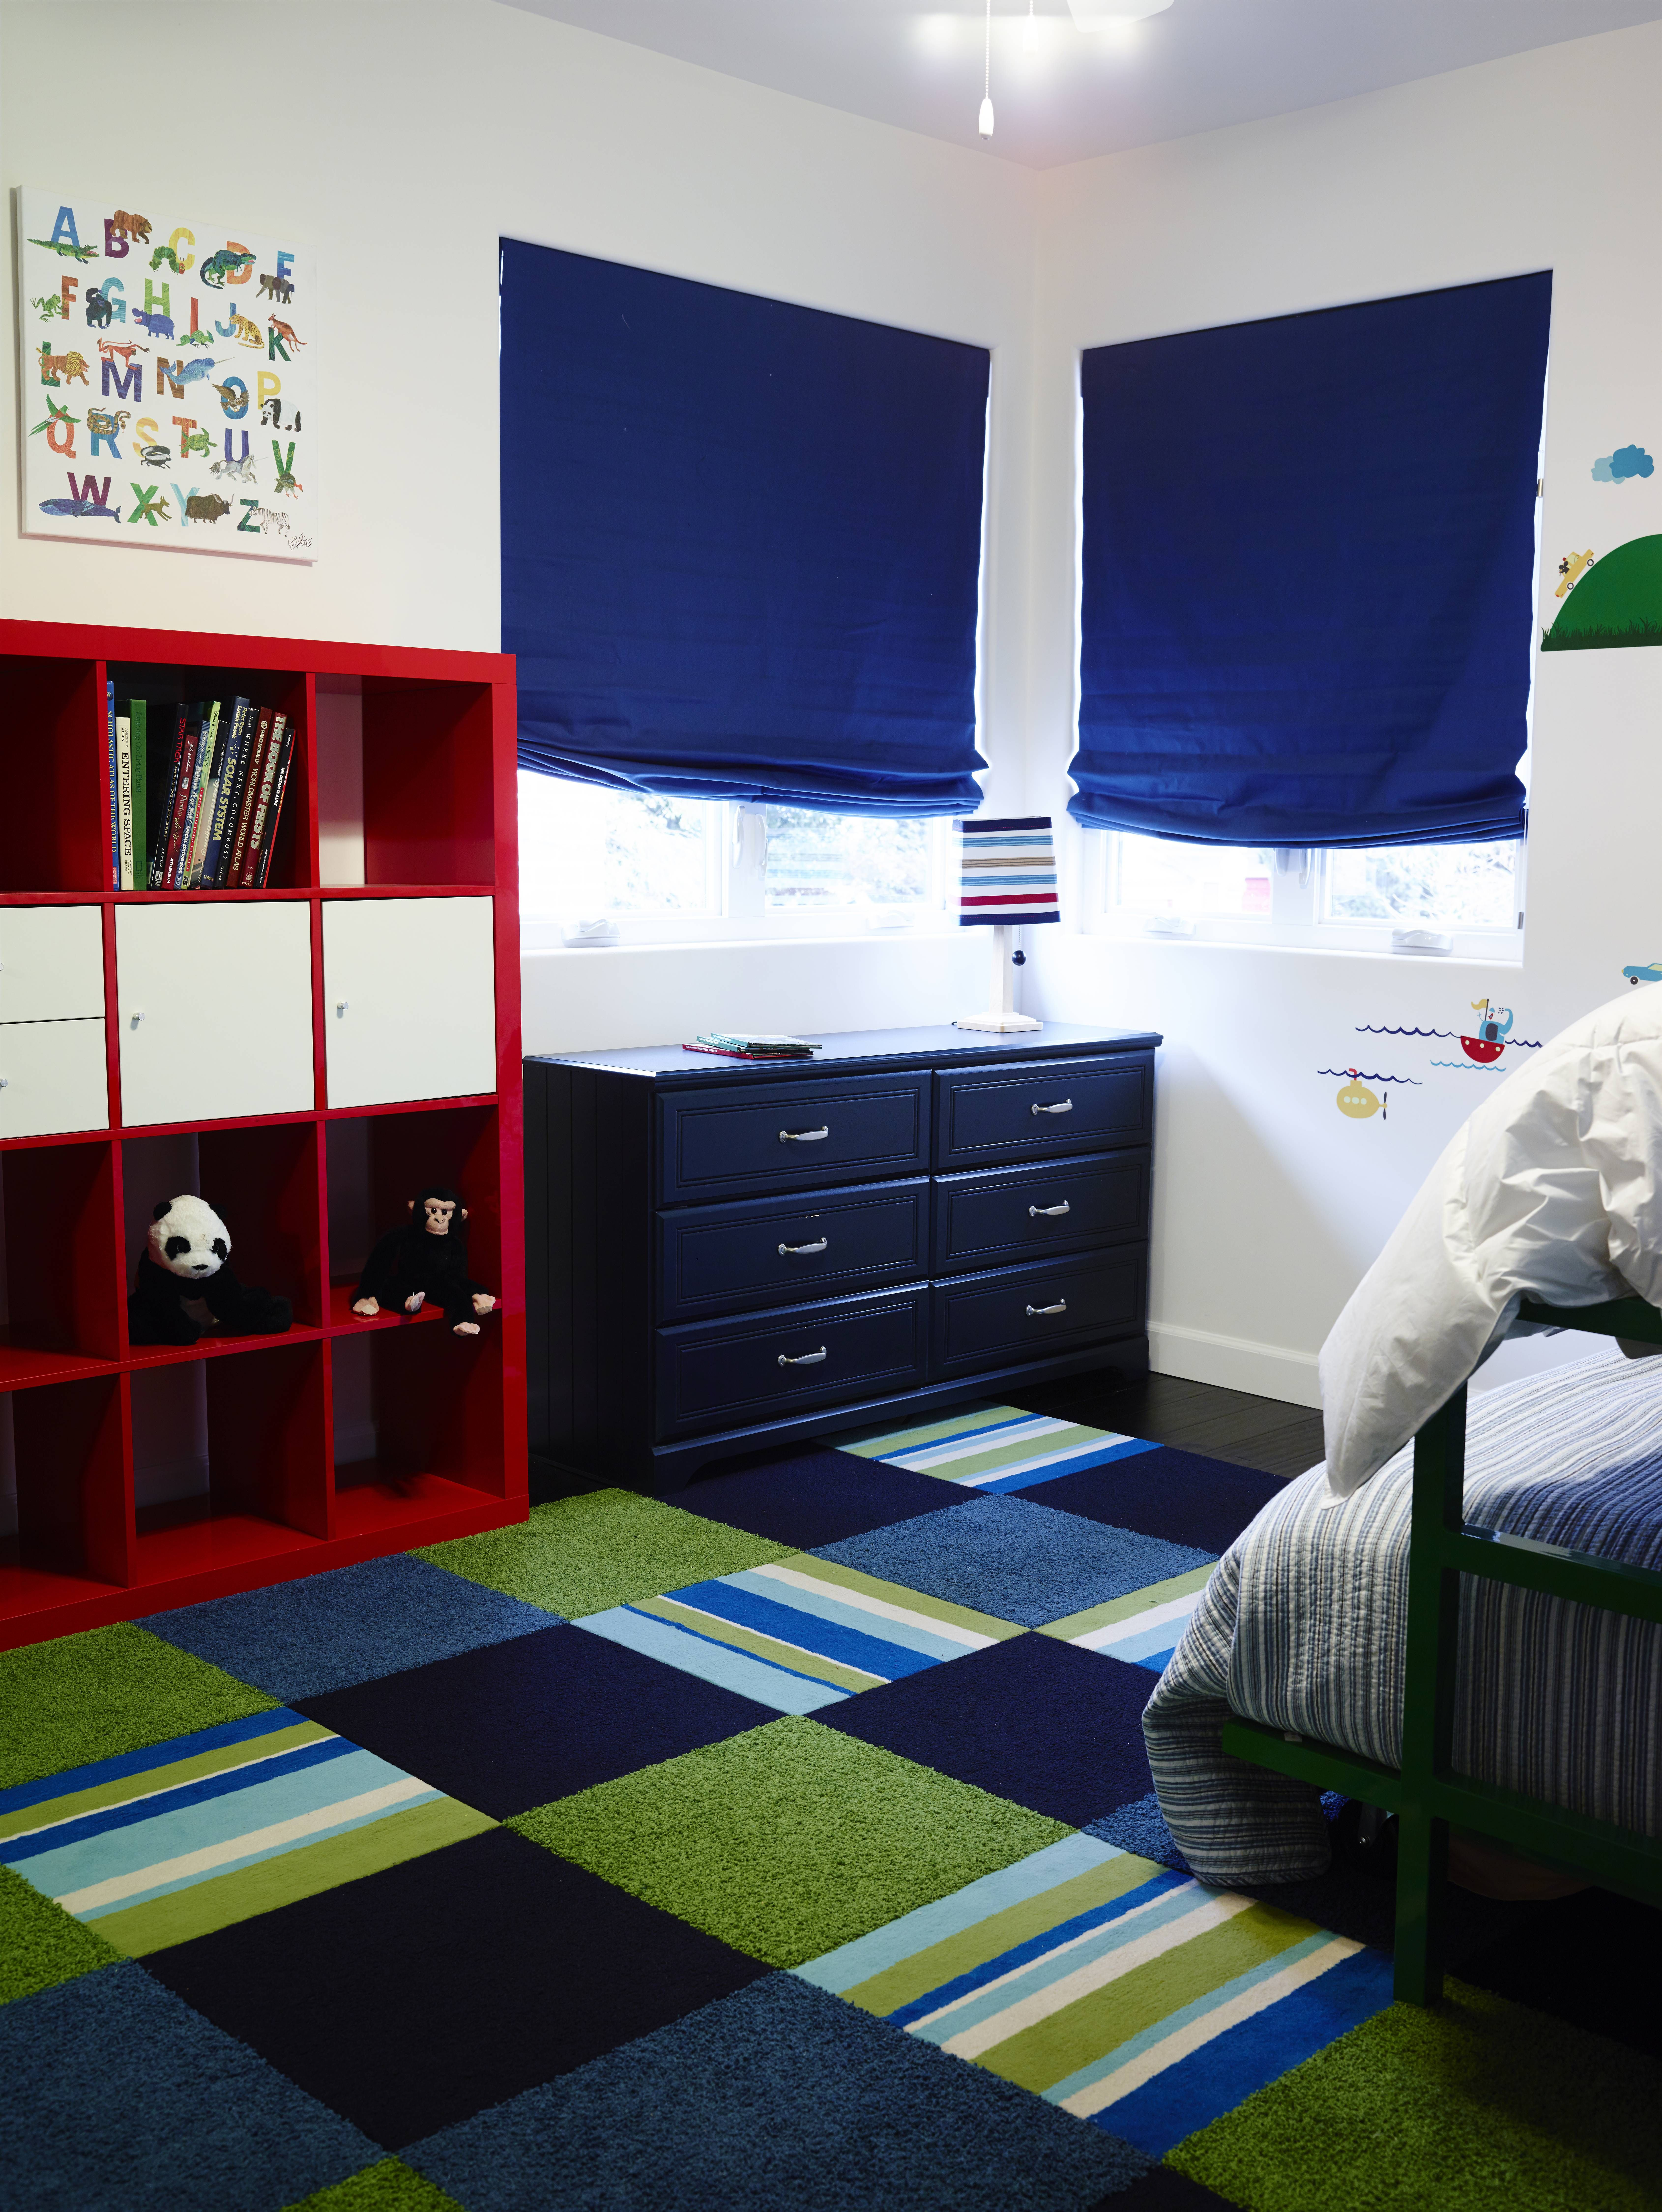 Boys Bedroom With Flor Carpet Tiles And Custom Shades From The